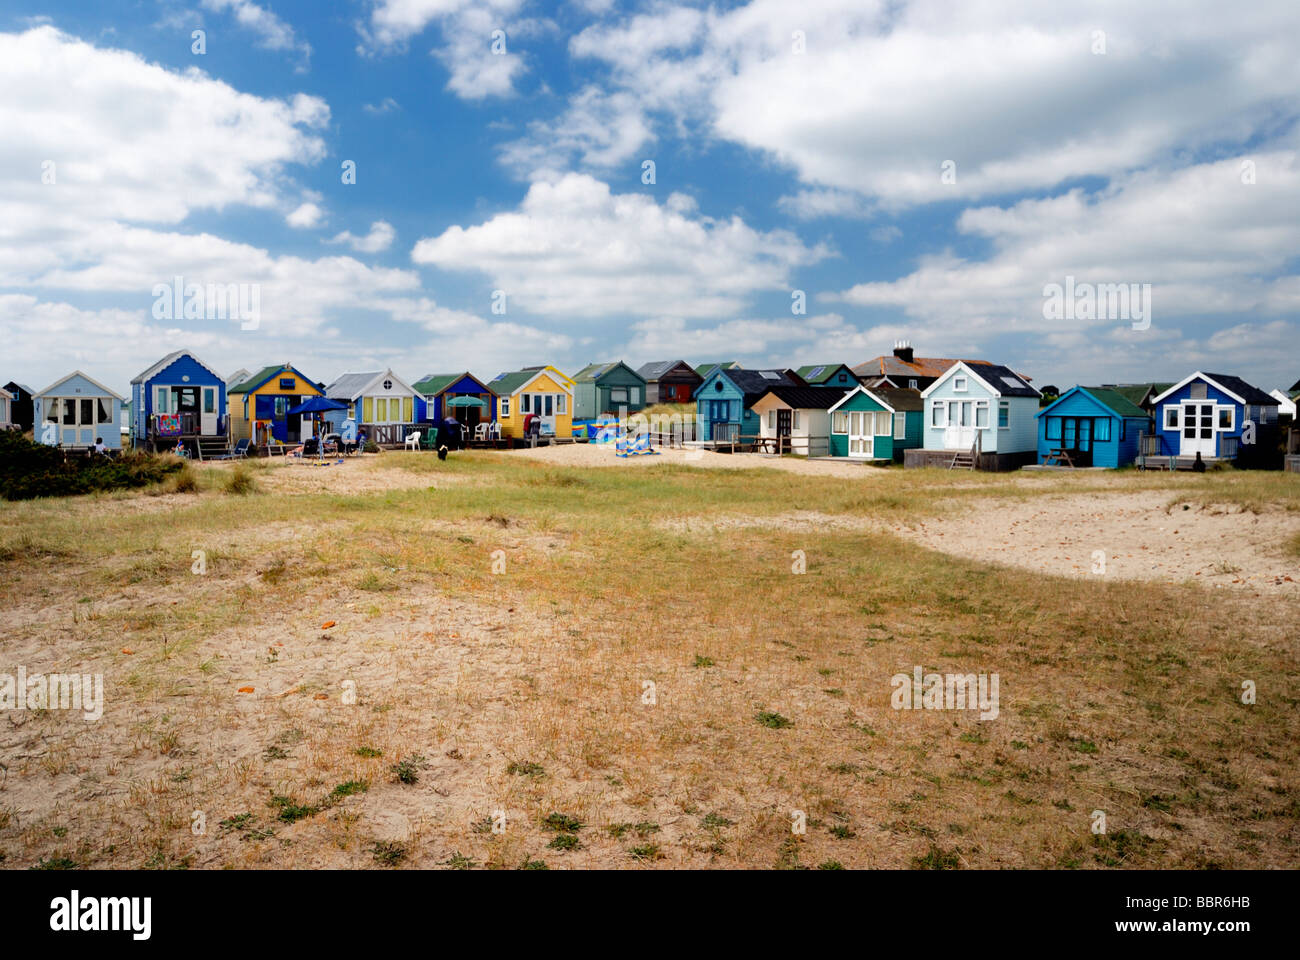 A row of large deluxe beach huts - Stock Image